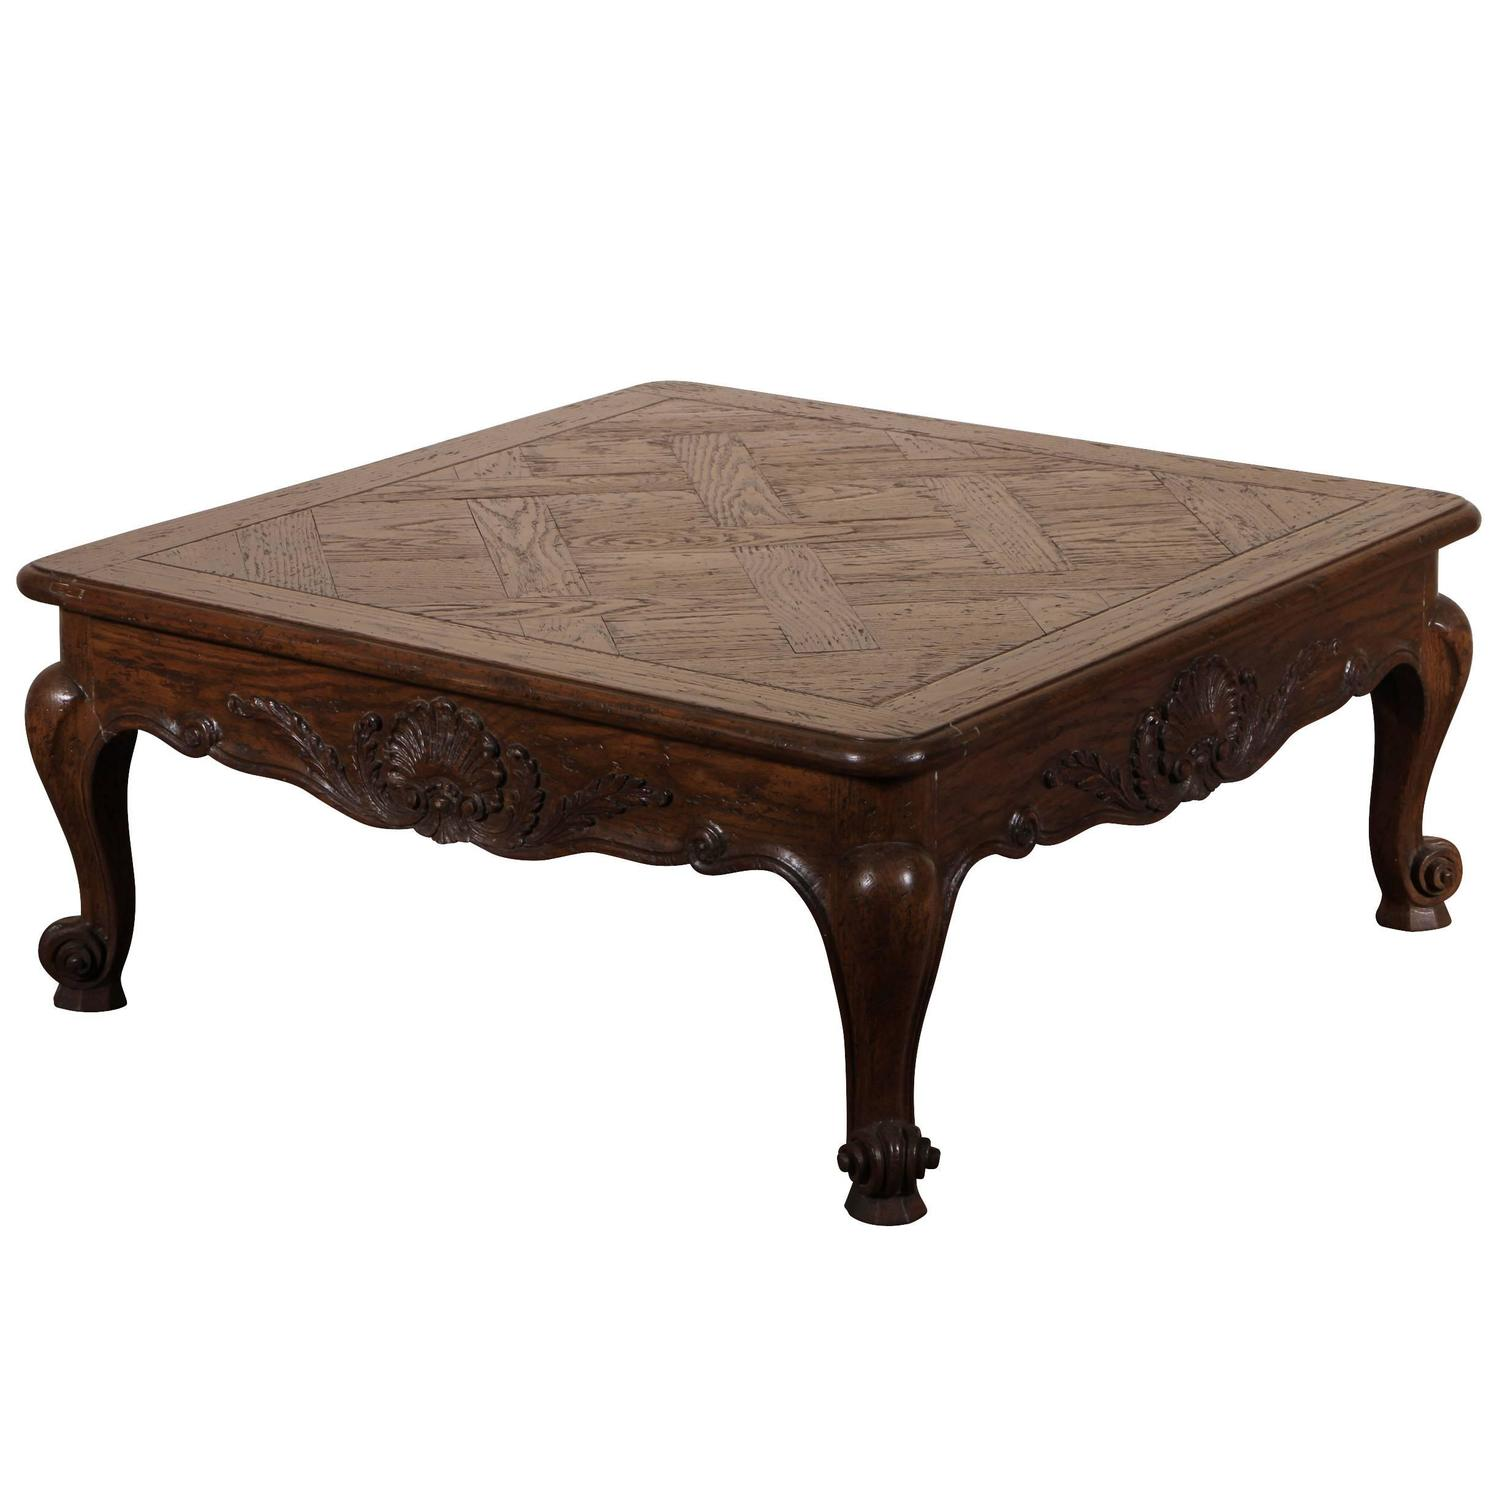 Country French Parquetry Cocktail Table By Auffray At 1stdibs